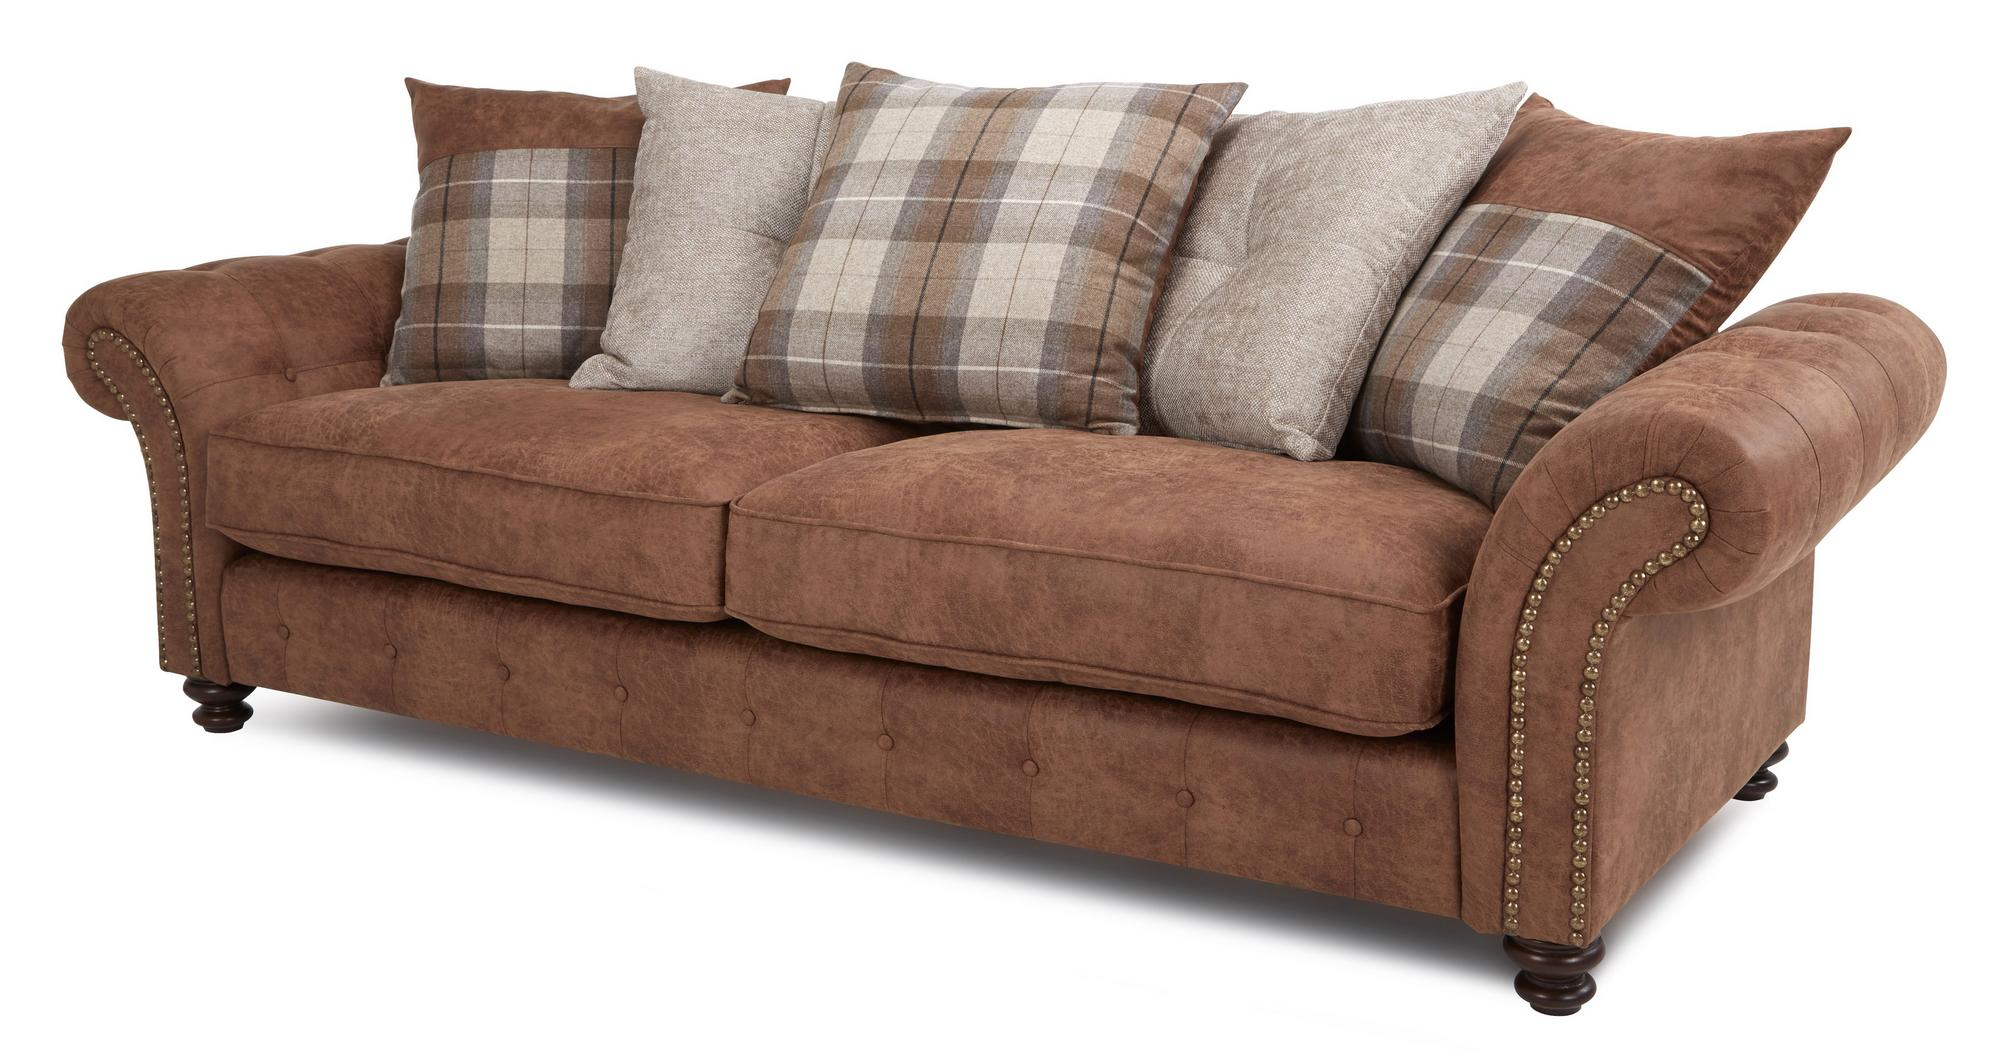 DFS Oakland Brown Fabric 4 Seater Pillow Back Sofa 2  : oakland4apboaklandbrowncombinationview2 from www.ebay.co.uk size 2000 x 1062 jpeg 230kB